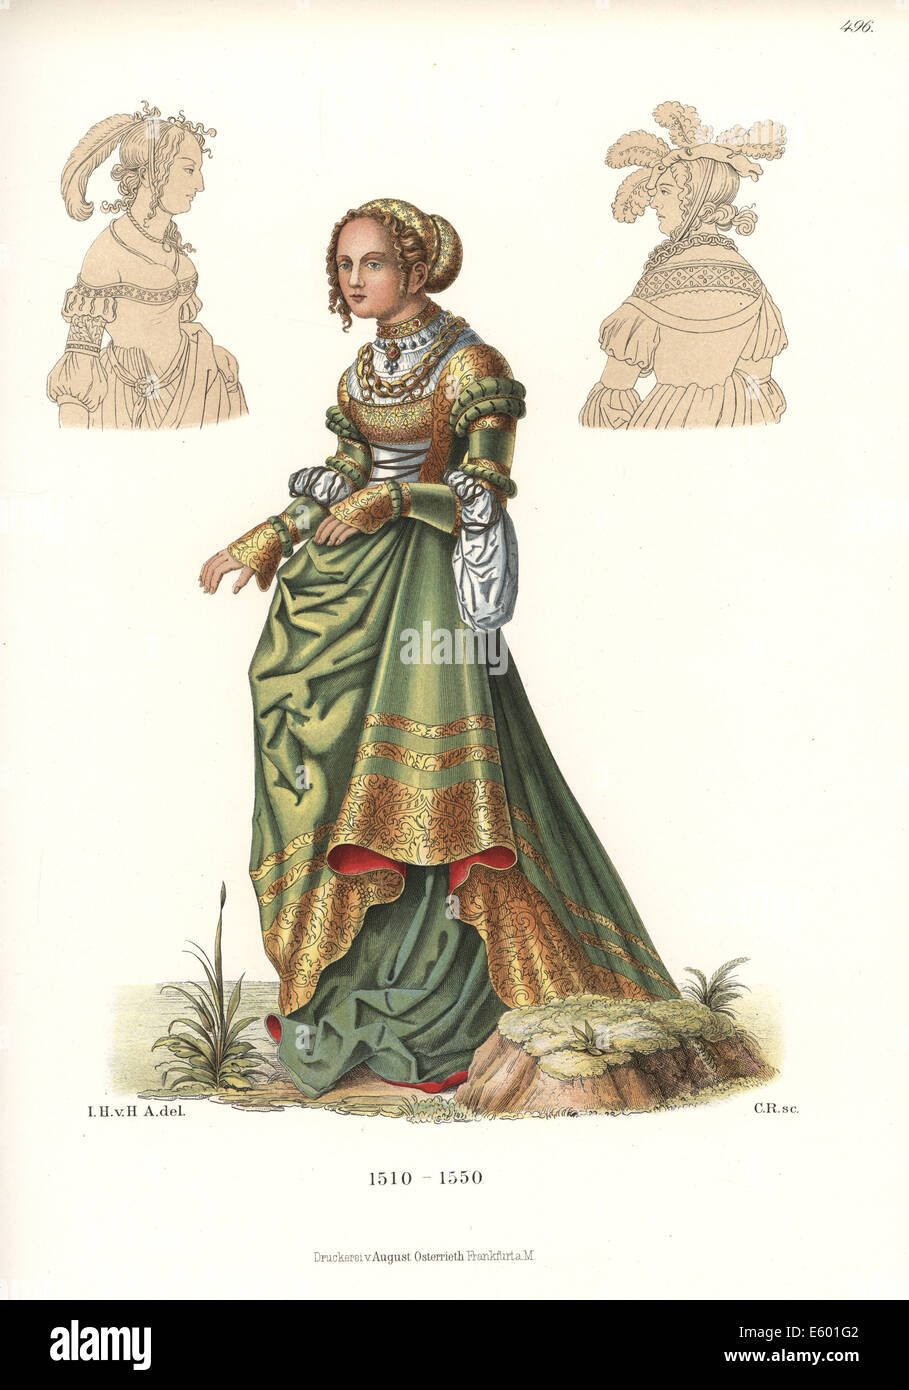 Costume of a German woman, first half of the 16th century. - Stock Image